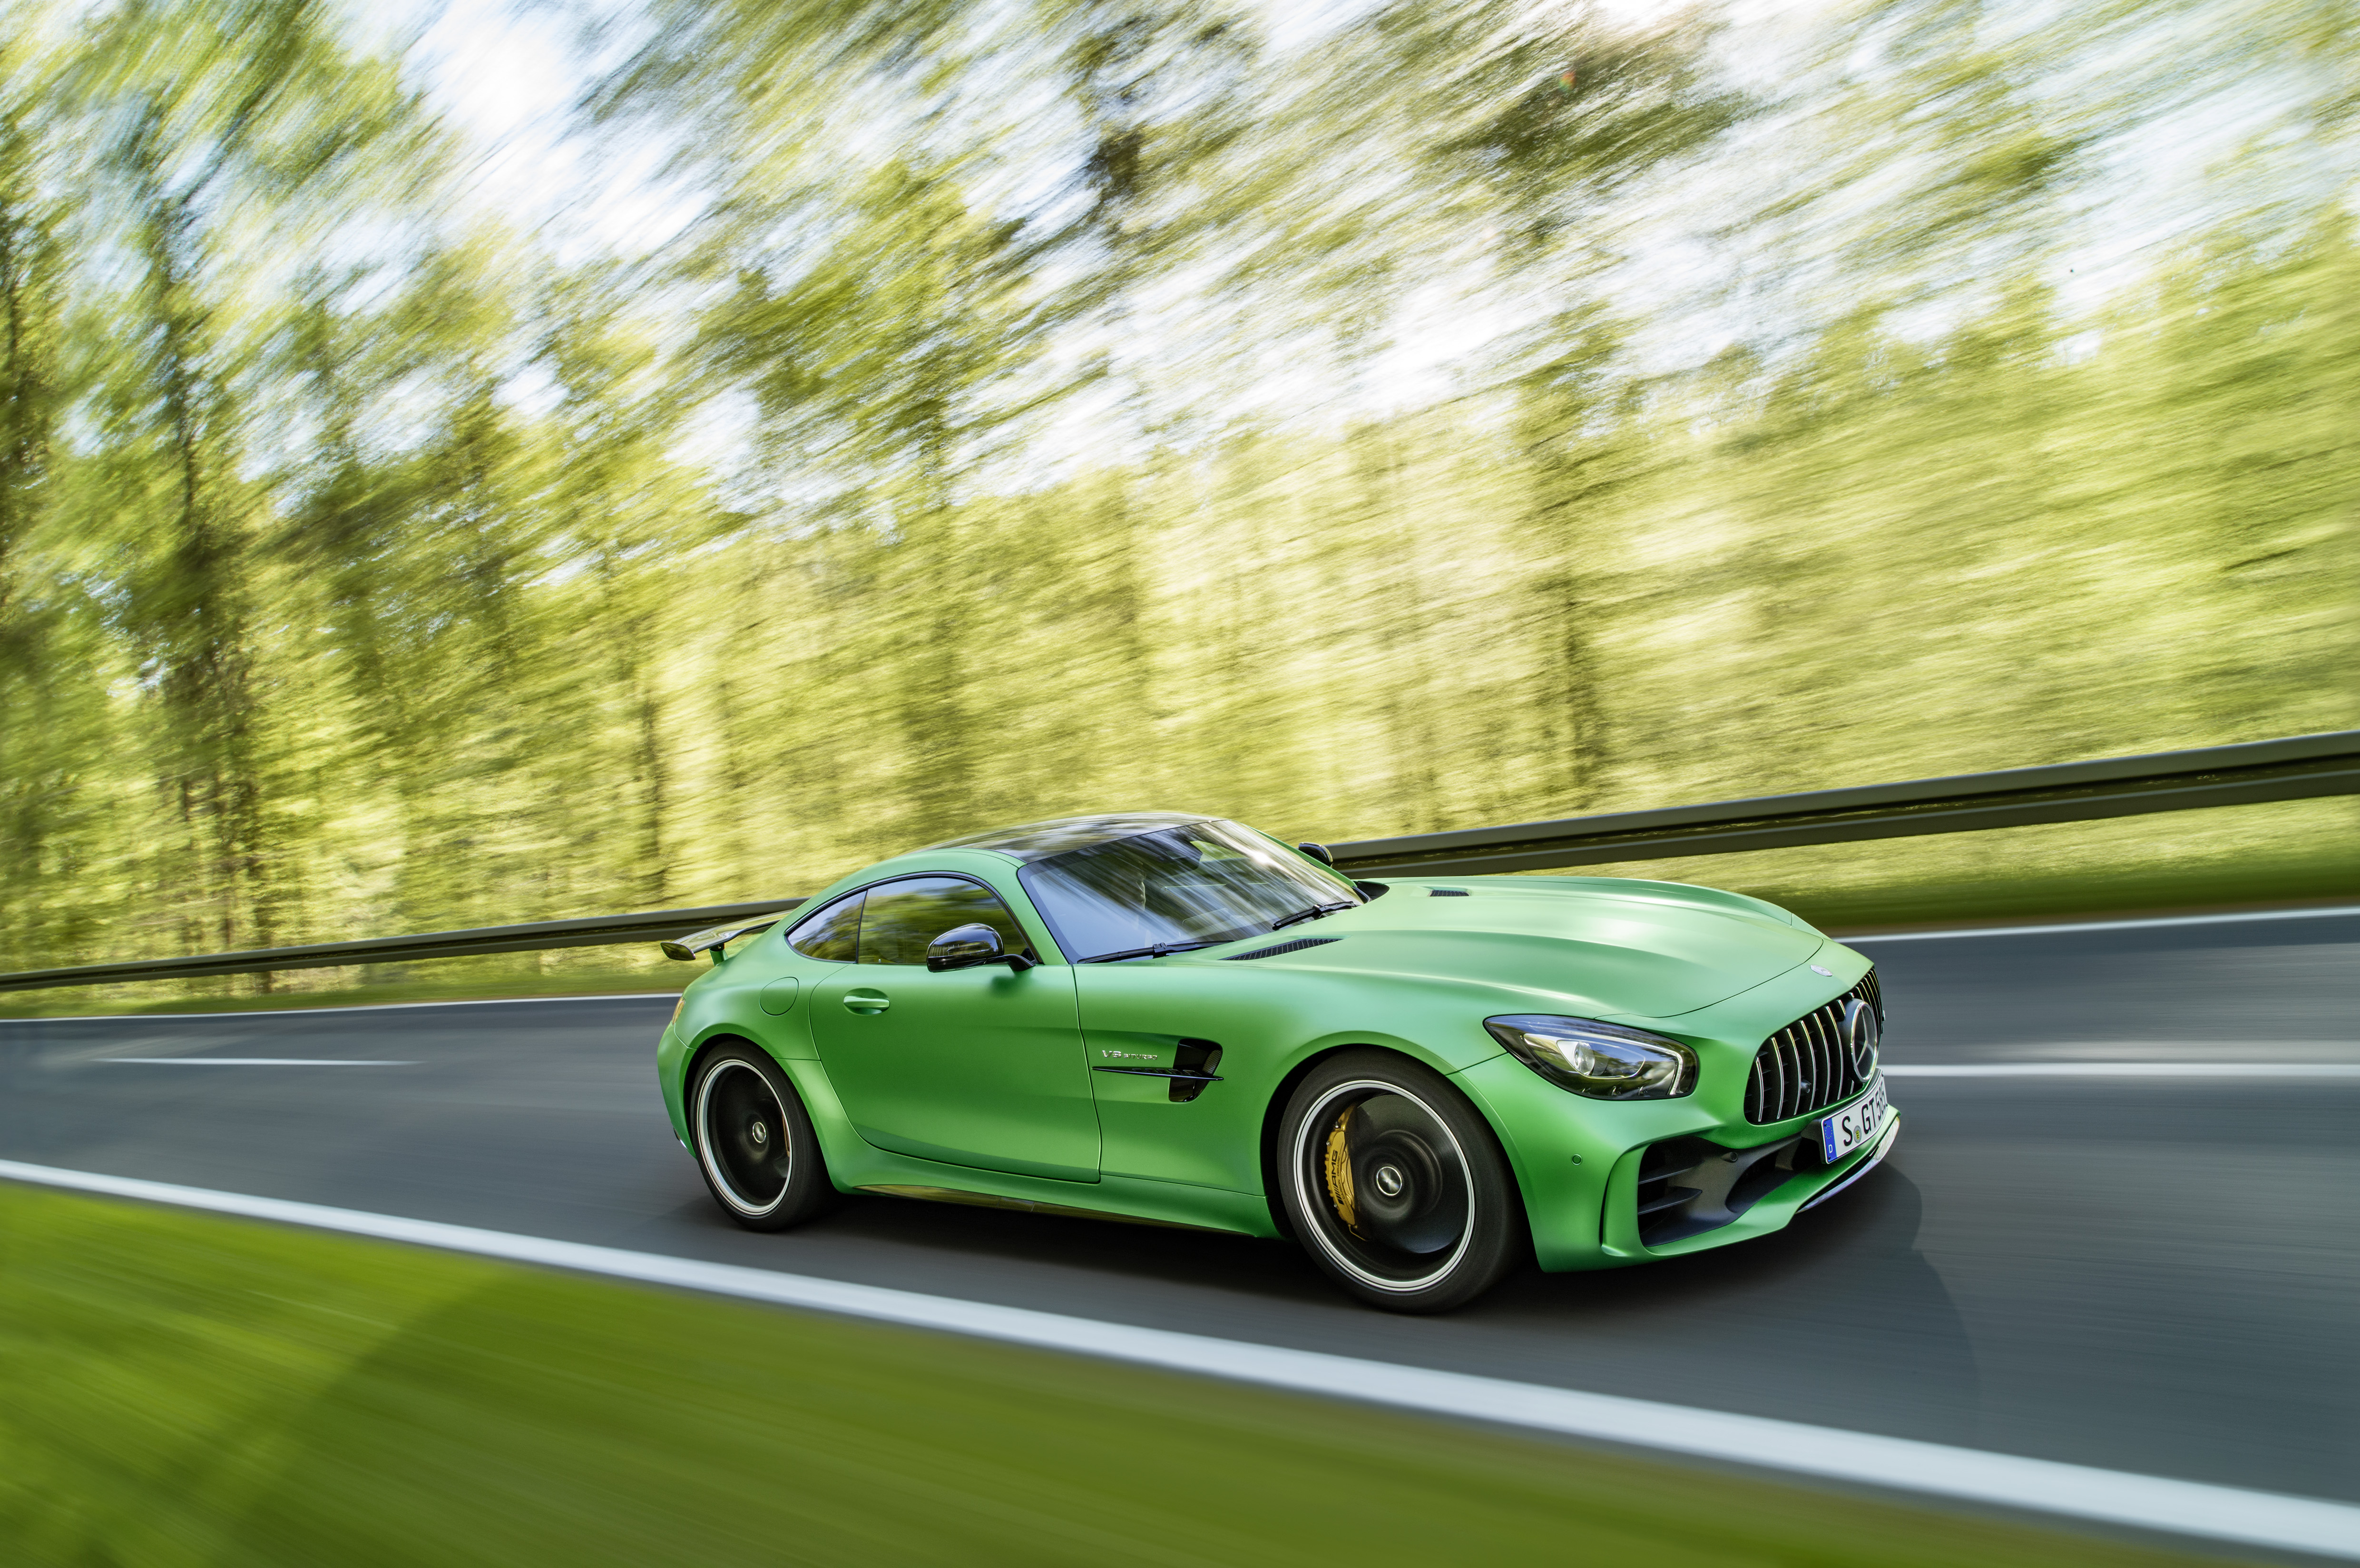 The new AMG GT R is Mercedes-Benz's most hardcore sports car - The Verge